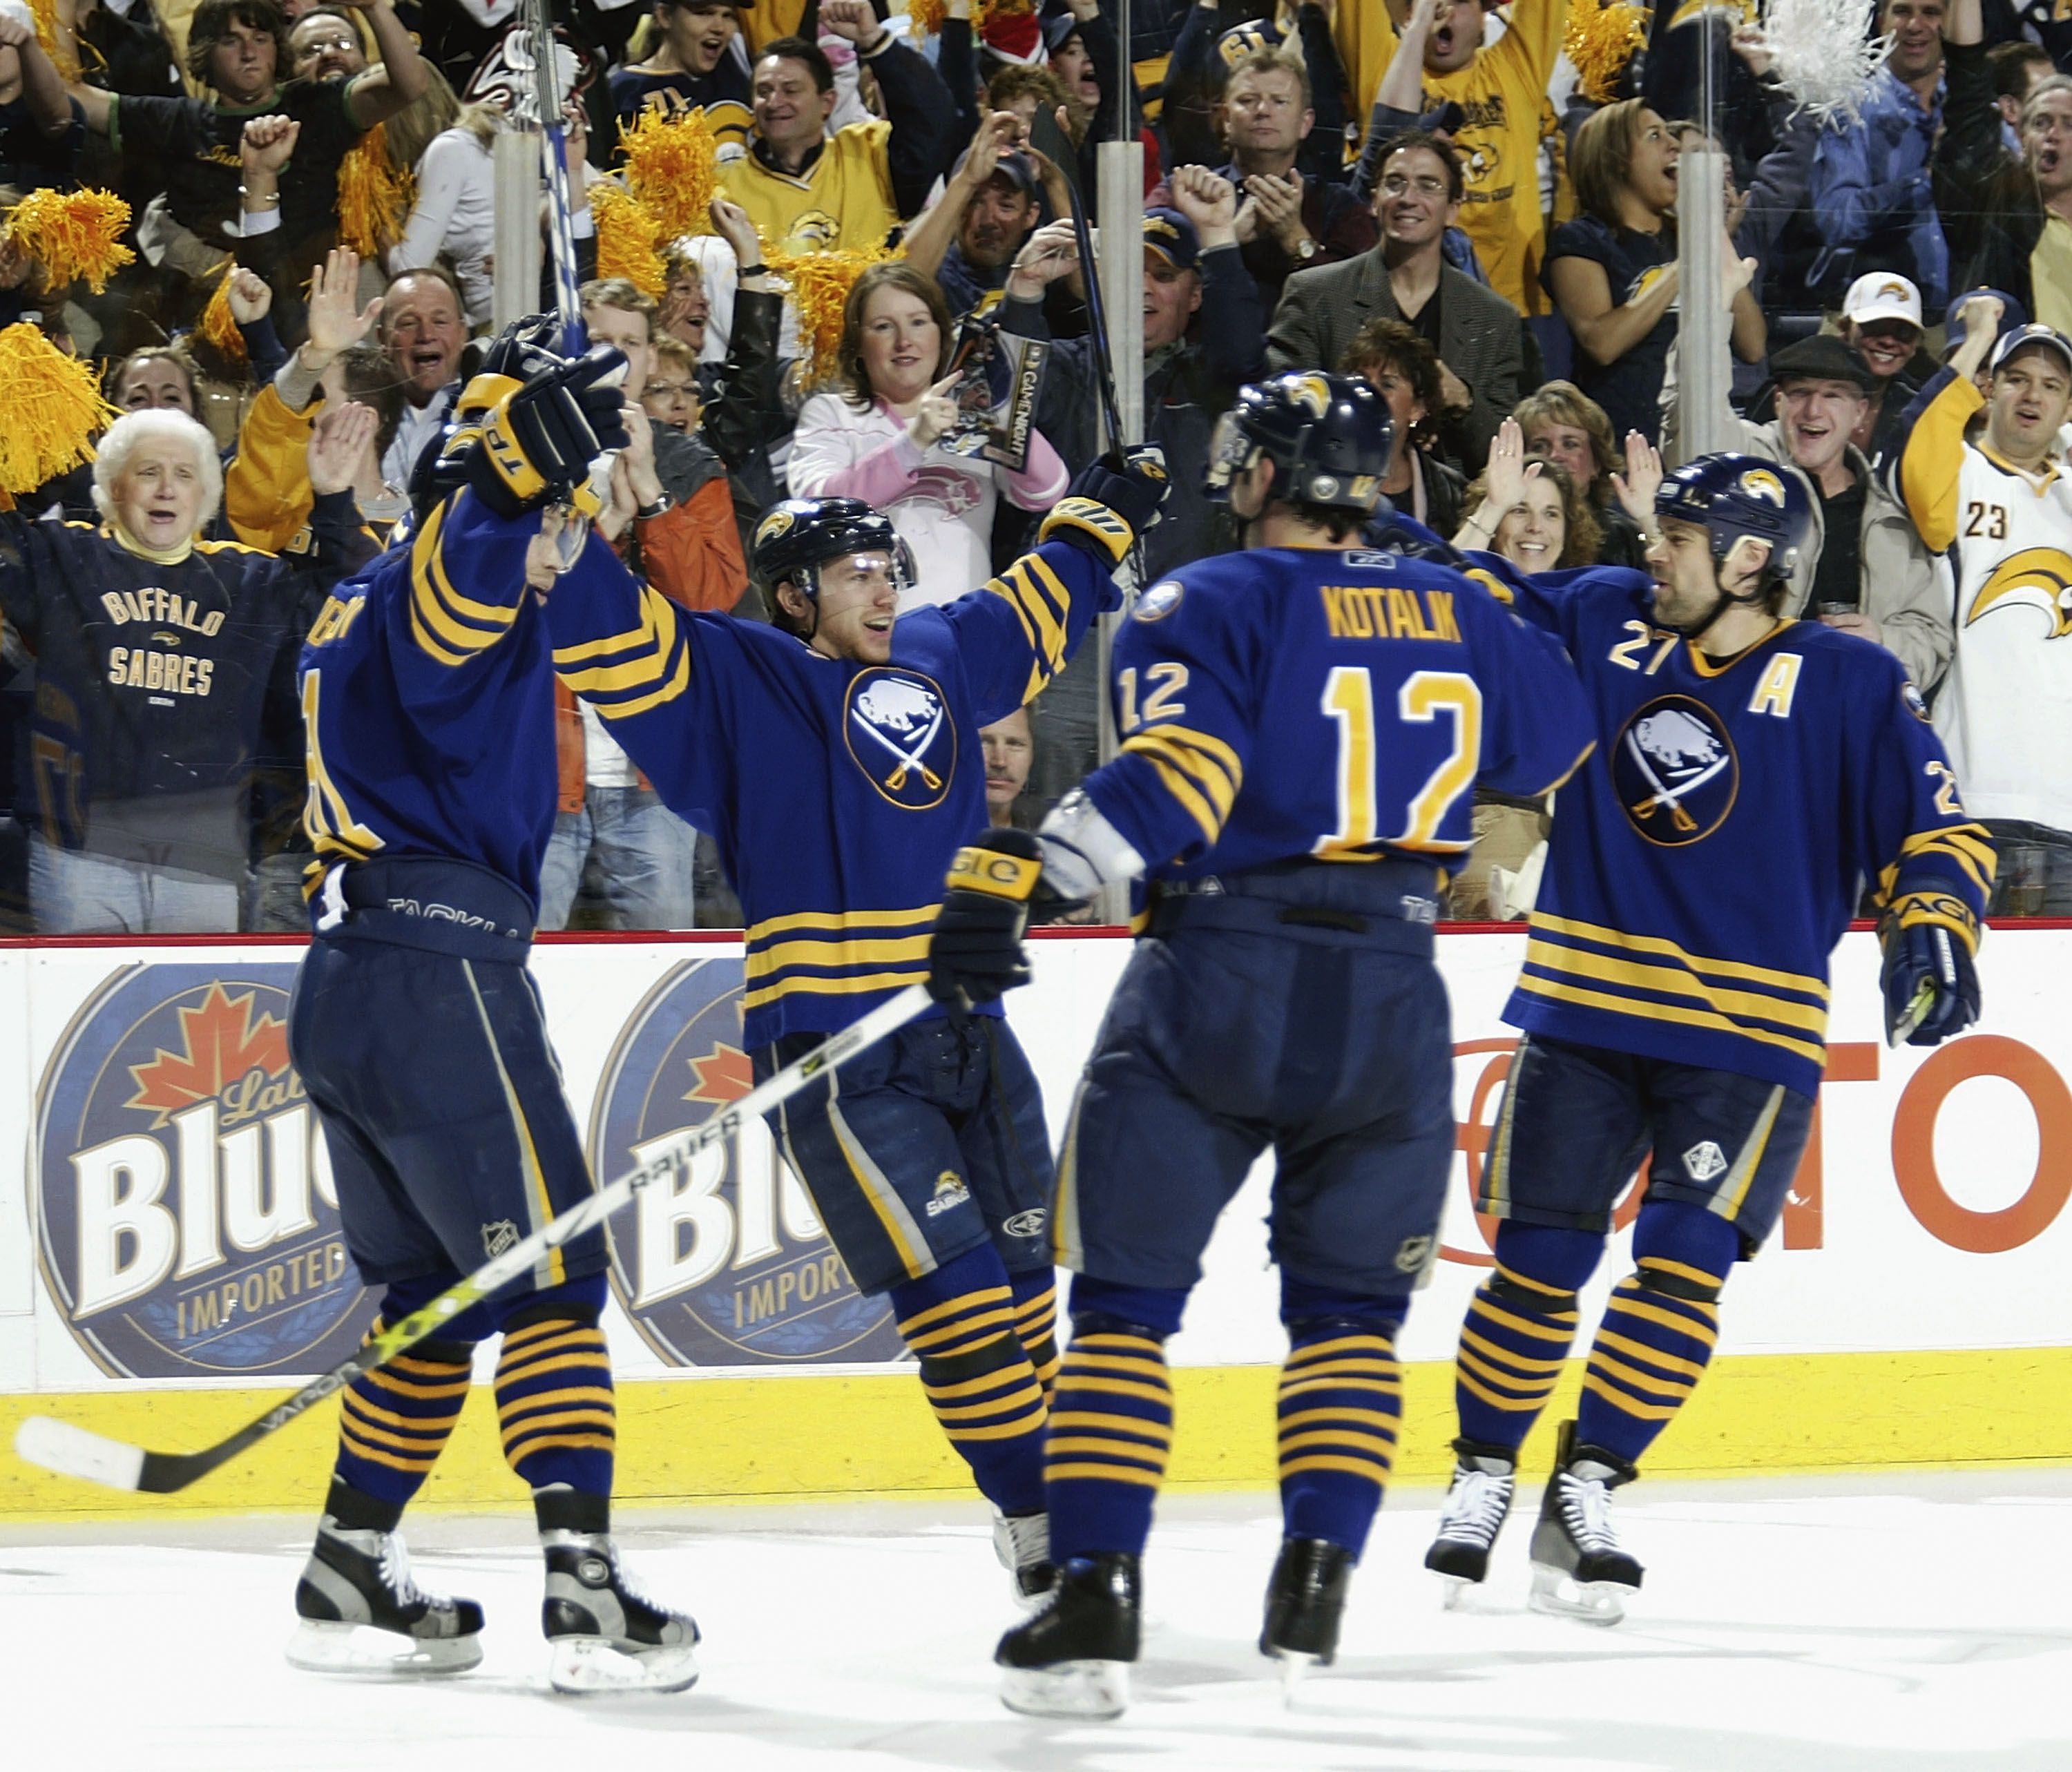 brand new 69d21 6a9e9 Sabres announce a return to royal blue | WGR 550 SportsRadio